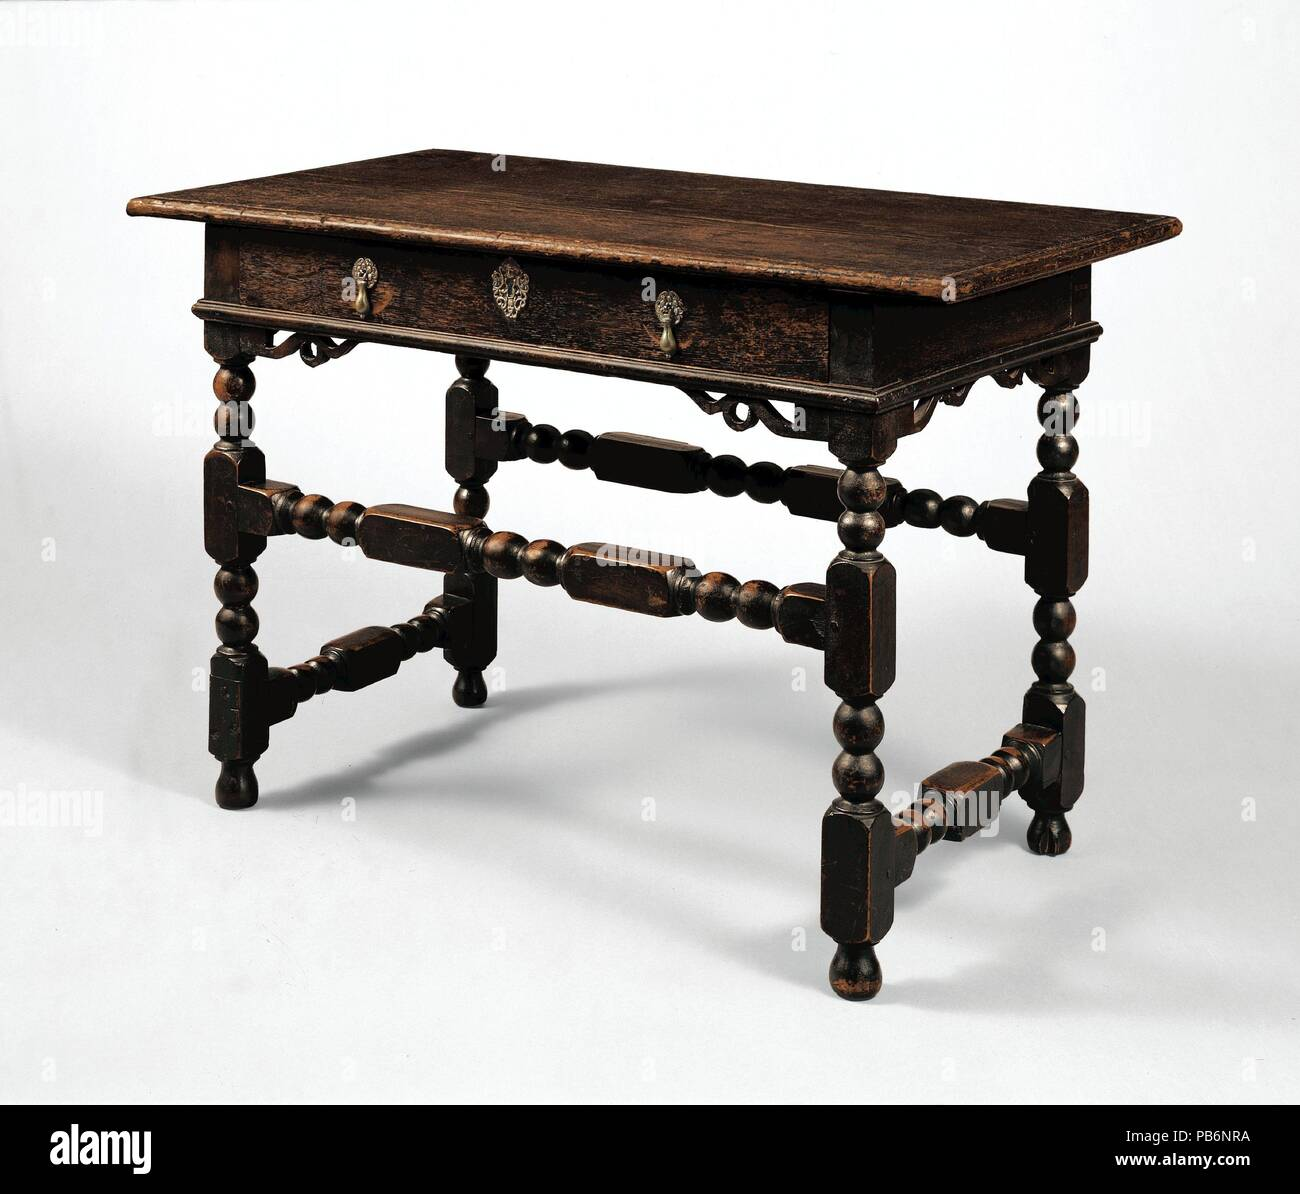 Joined Table With Drawer Culture American Dimensions 26 1 2 X 40